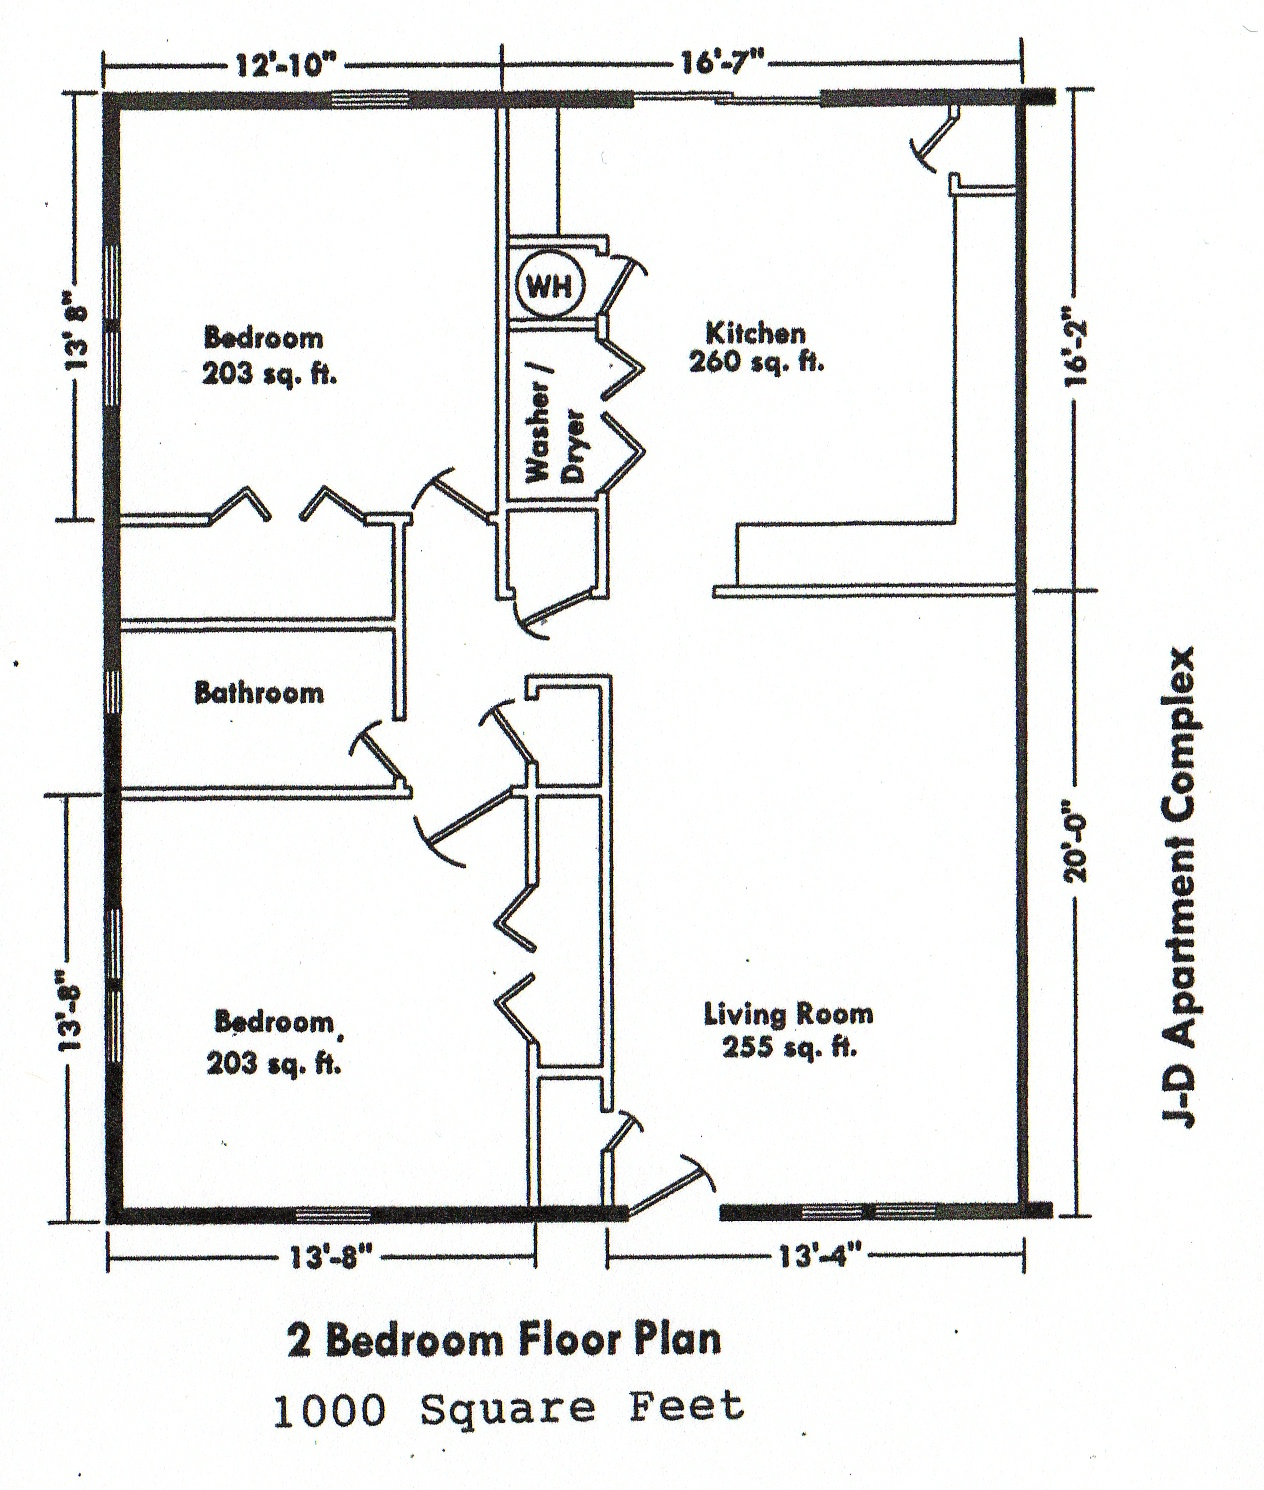 2 Bedroom Floor Plans House Design